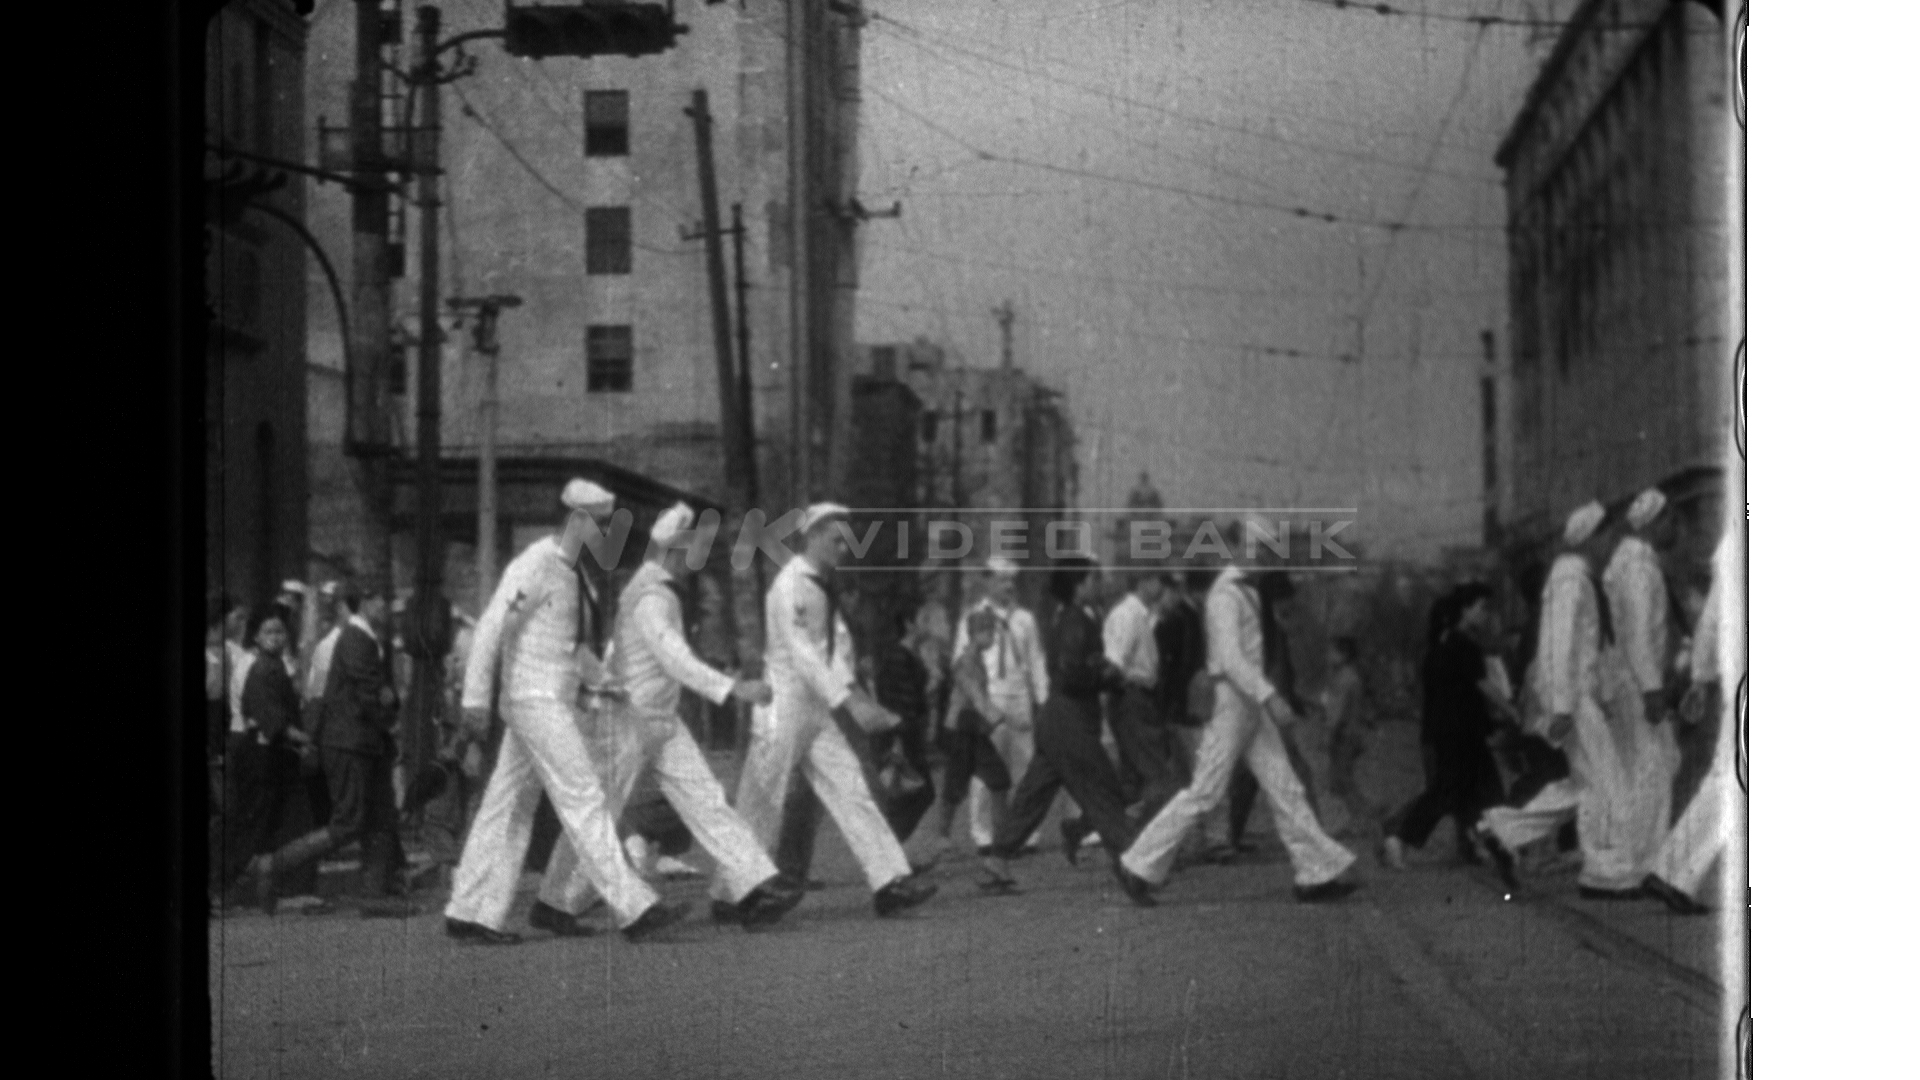 Scenes of the Occupation Army, Tokyo (1945)